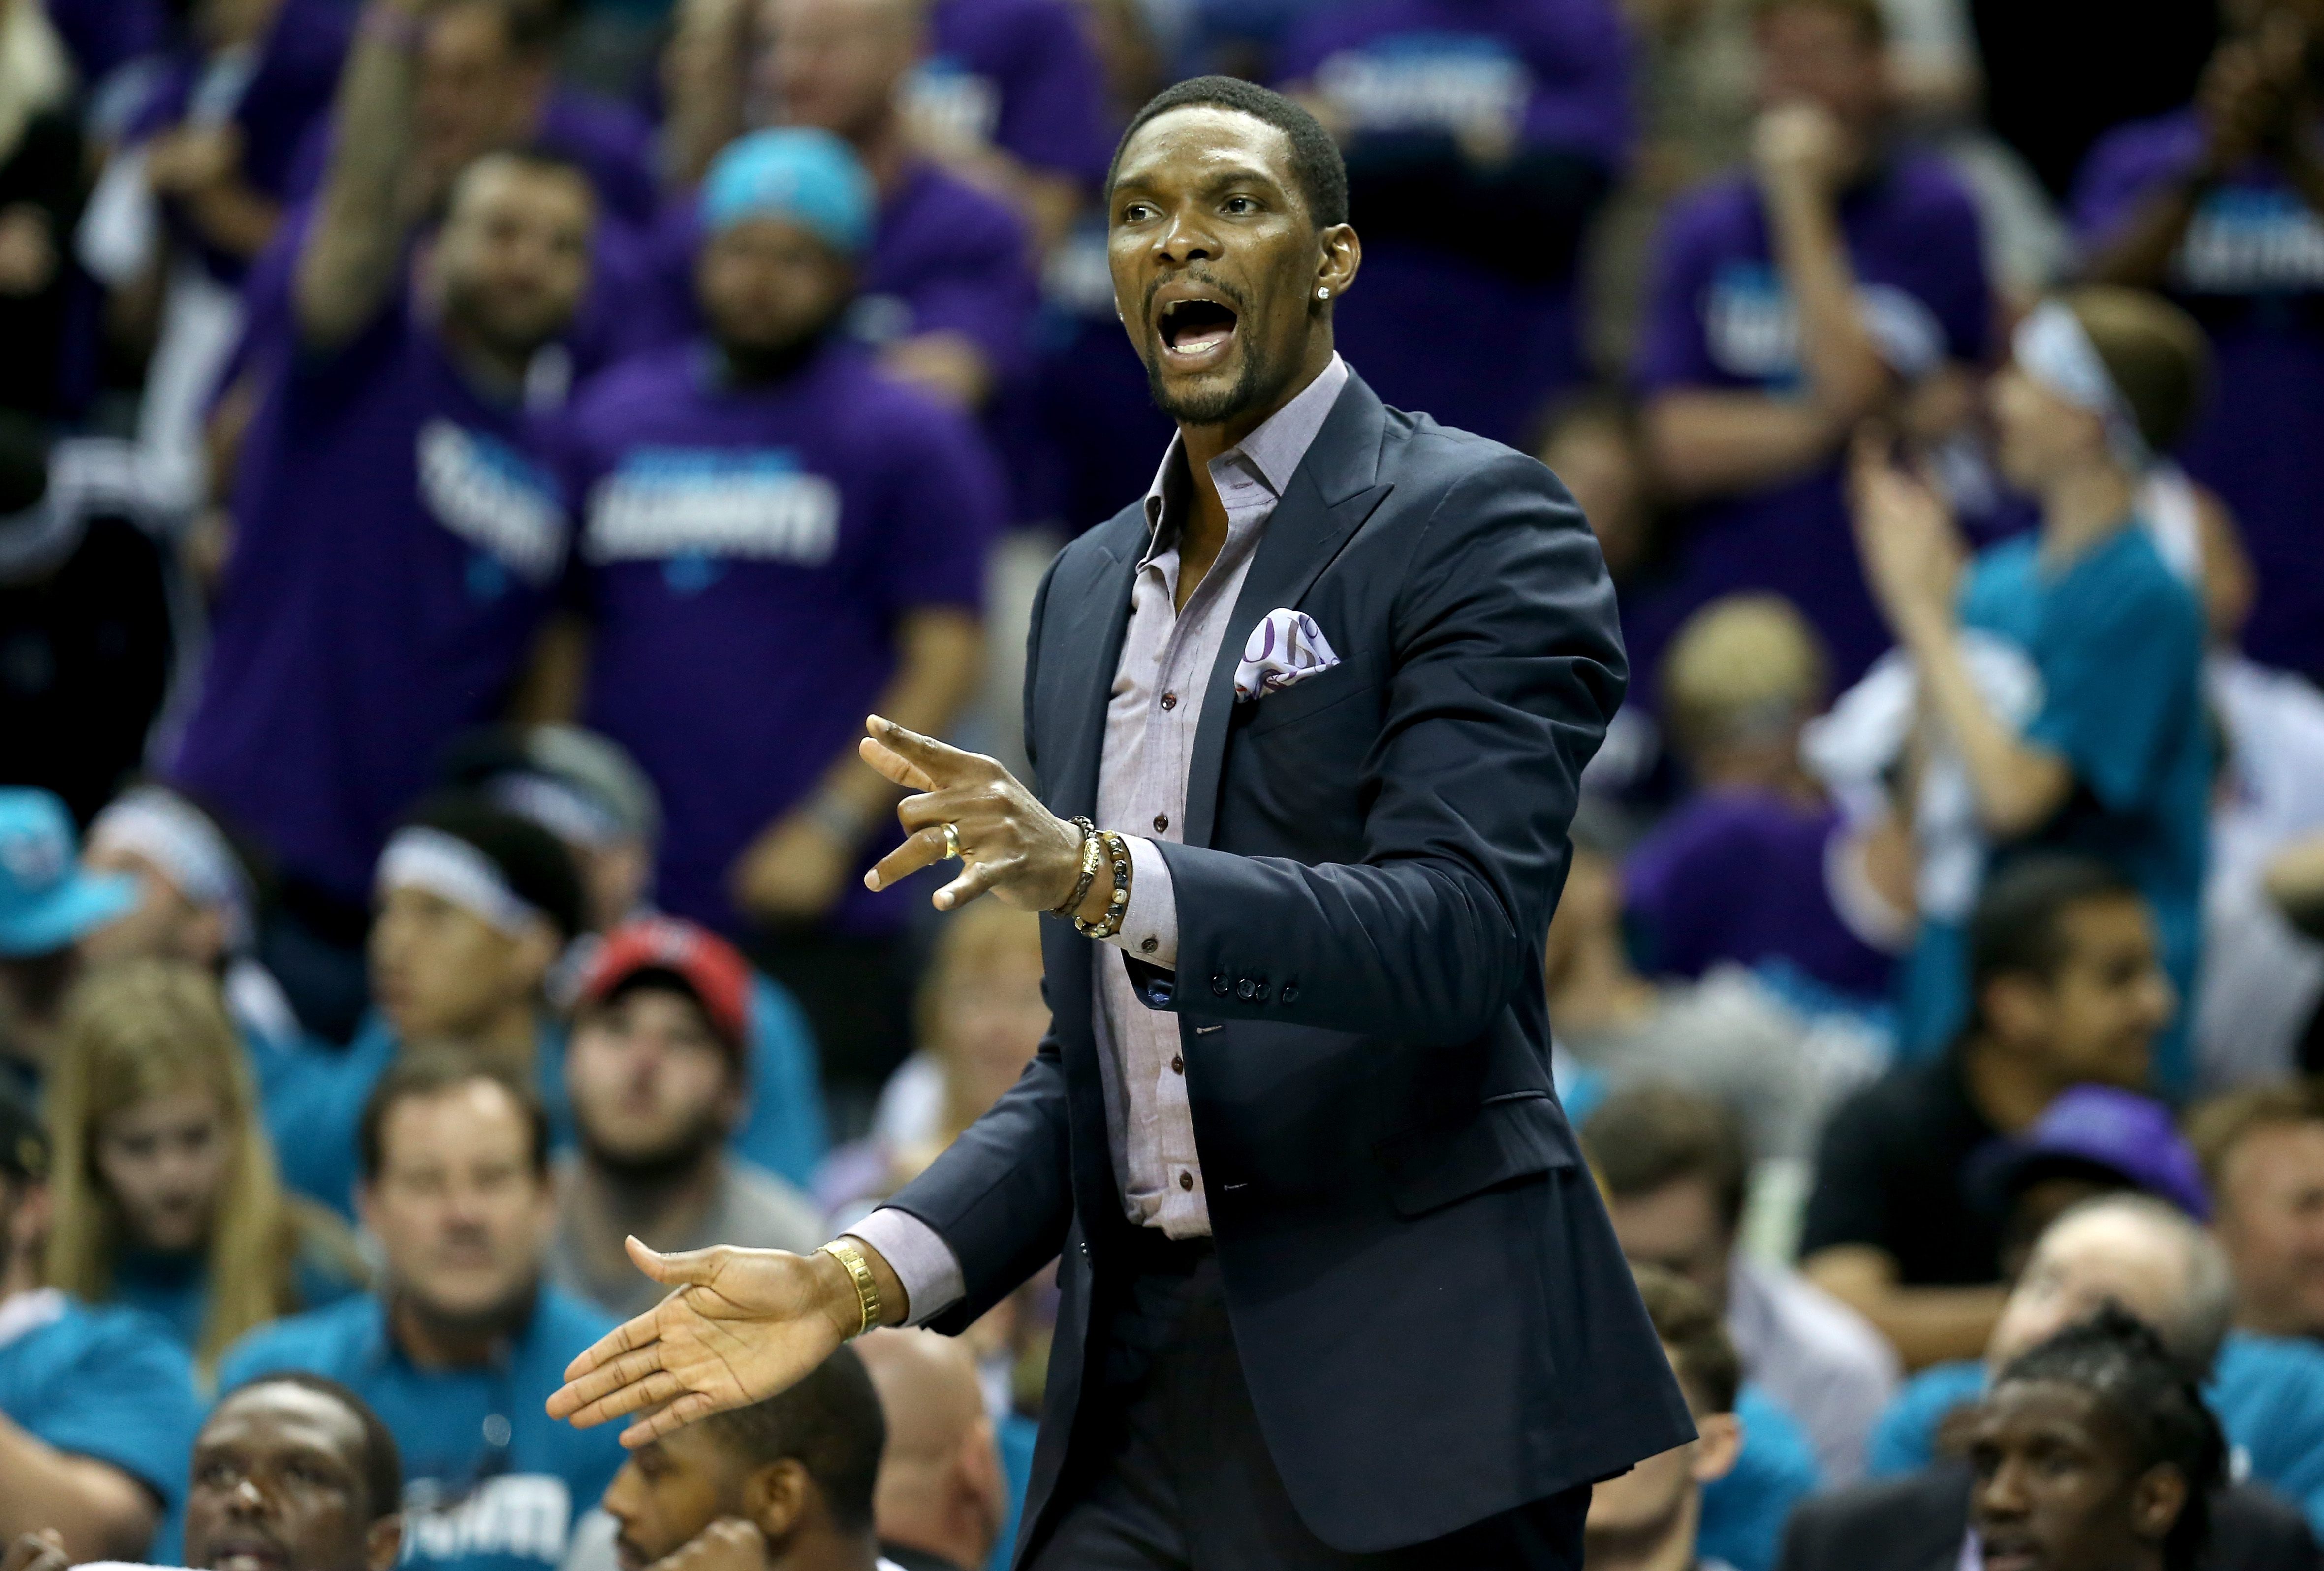 CHARLOTTE, NC - APRIL 25:  Chris Bosh #1 of the Miami Heat watches on from the bench against the Charlotte Hornets during game four of the Eastern Conference Quarterfinals of the 2016 NBA Playoffs at Time Warner Cable Arena on April 25, 2016 in Charlotte,